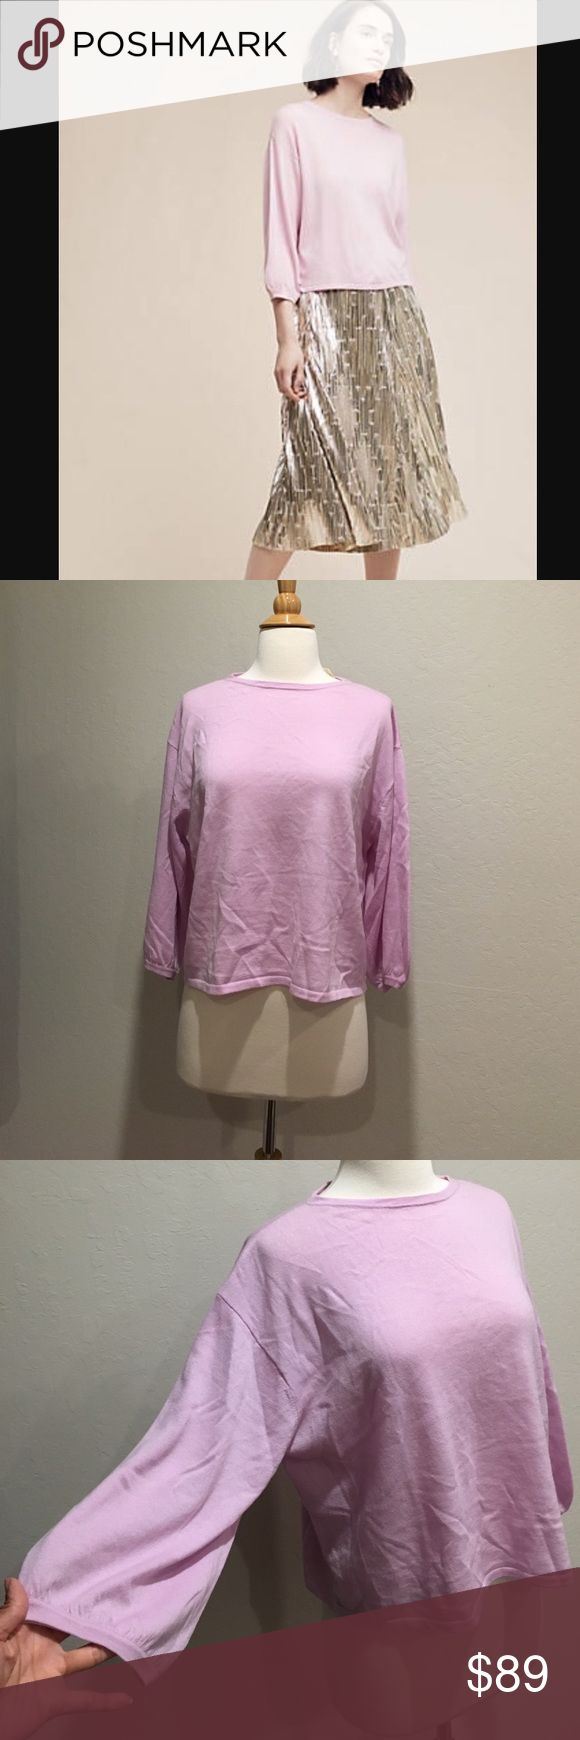 """Anthropologie Demylee lavender top NWT. Size S. Relax fit so fit M as well. 100% high quality wool. Bust flat across 24"""". 20"""" long. Balloon sleeves. Price is firm unless bundle. Anthropologie Tops"""